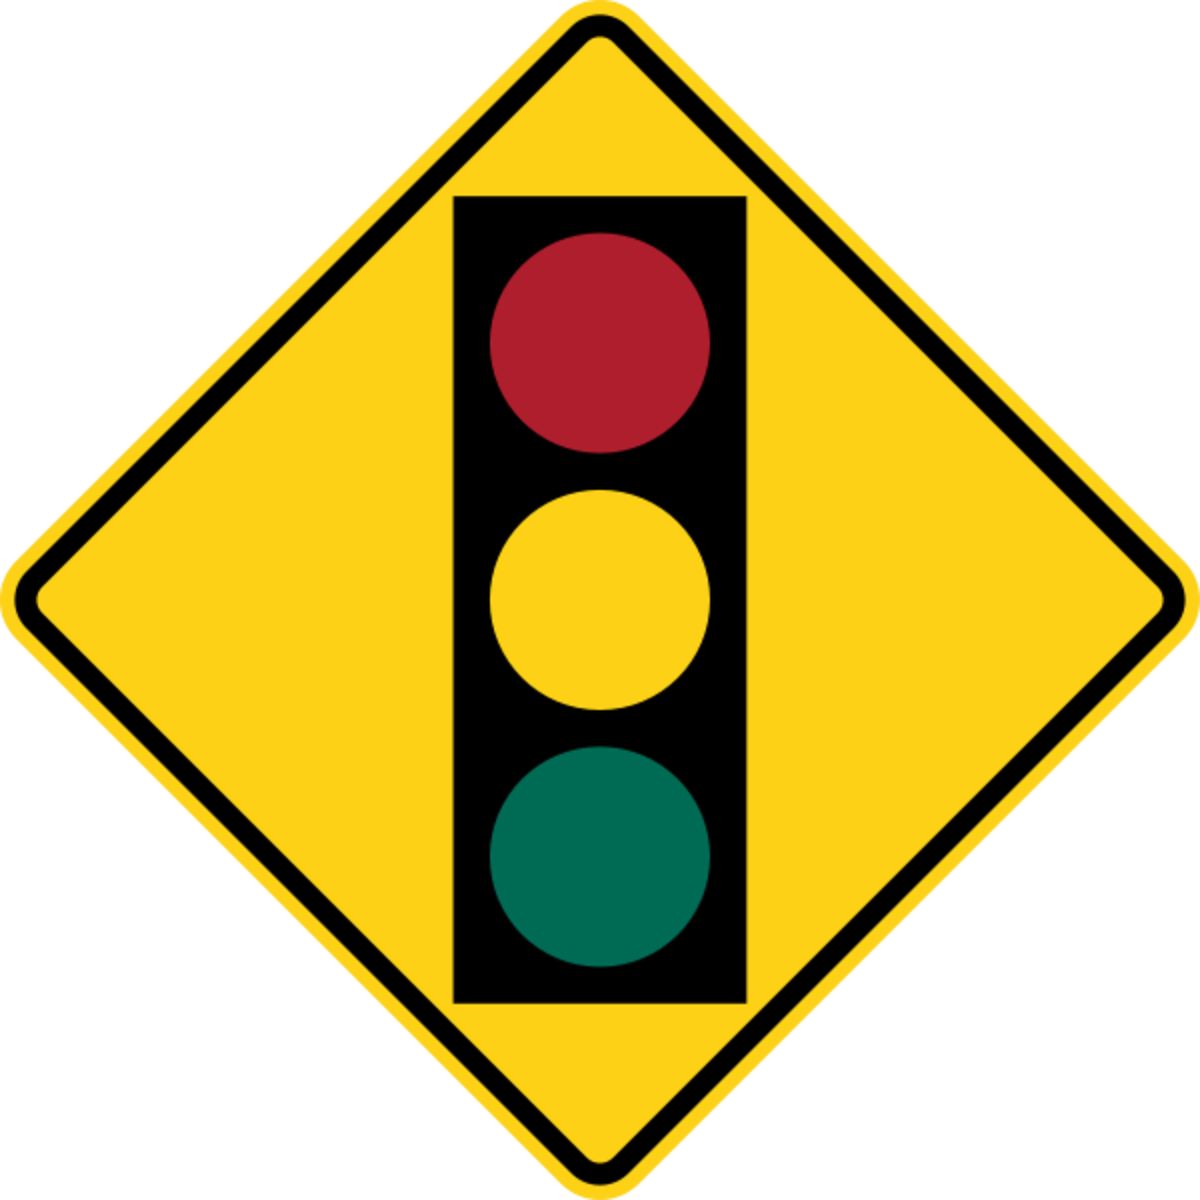 "Now pay close attention, this is not a ""traffic light"" or a traffic signal, it is a ""Stop n go"" light!"